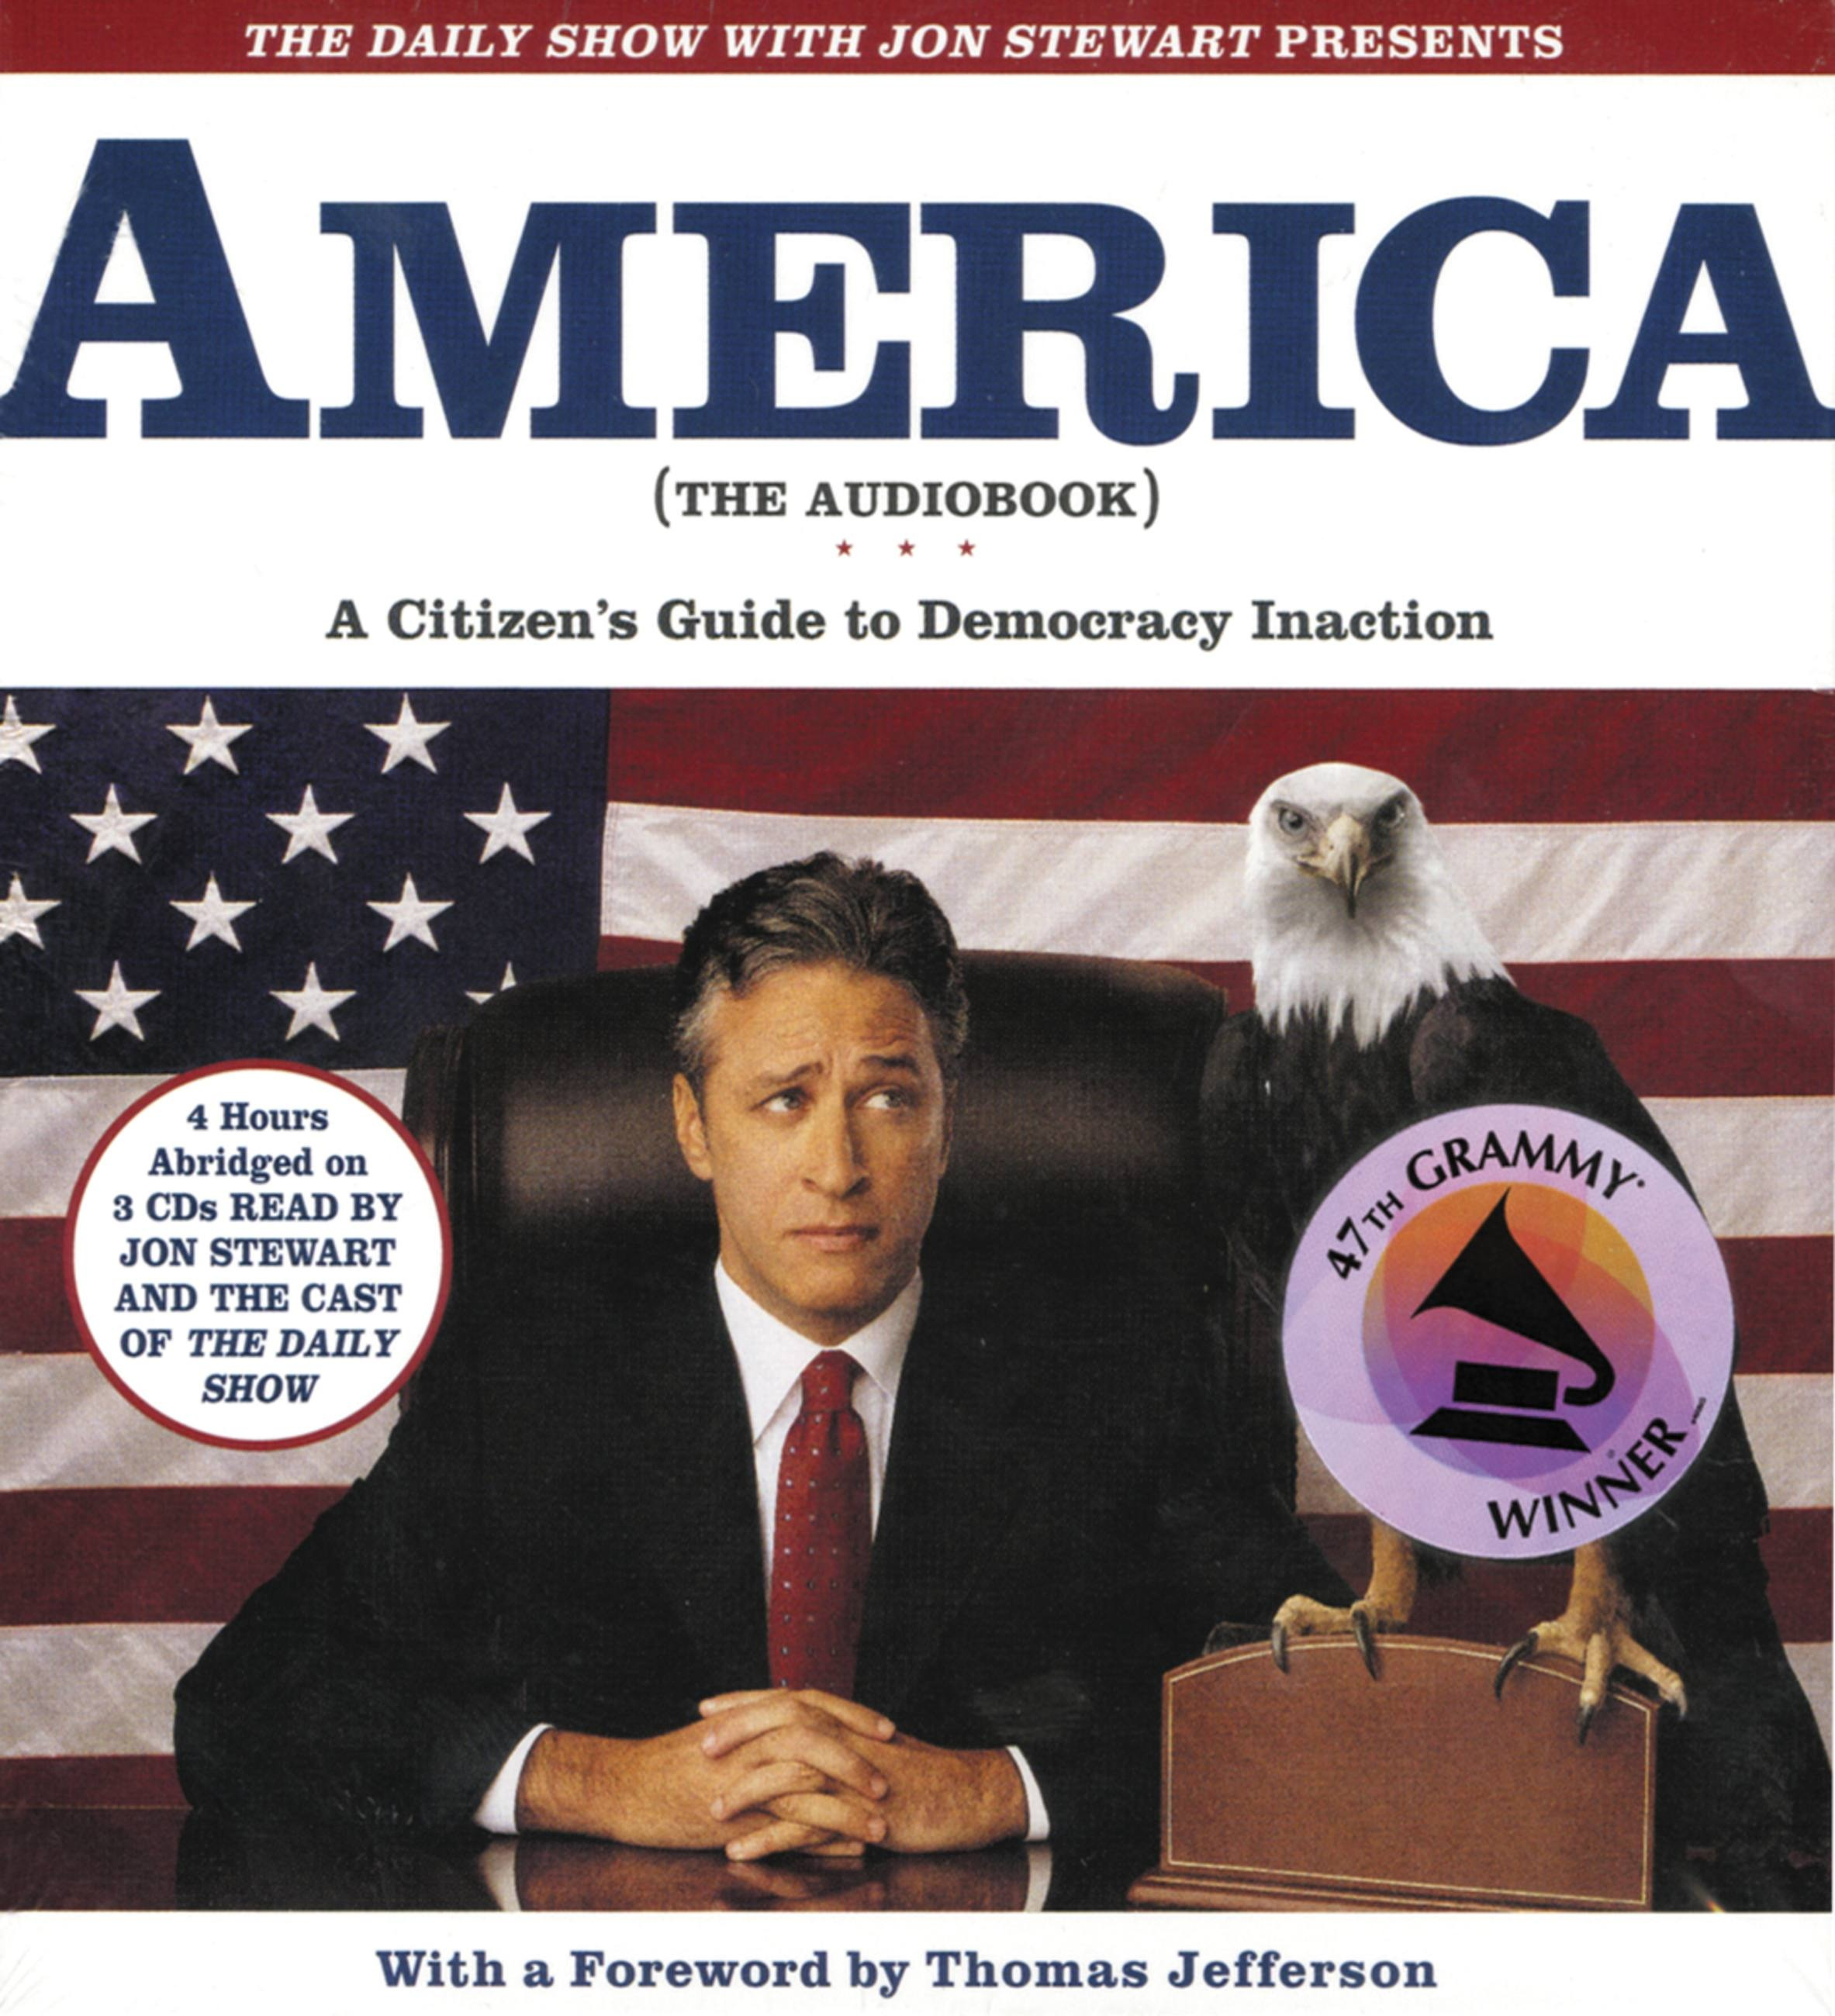 Daily Show with Jon Stewart Presents America (The Audiobook), The